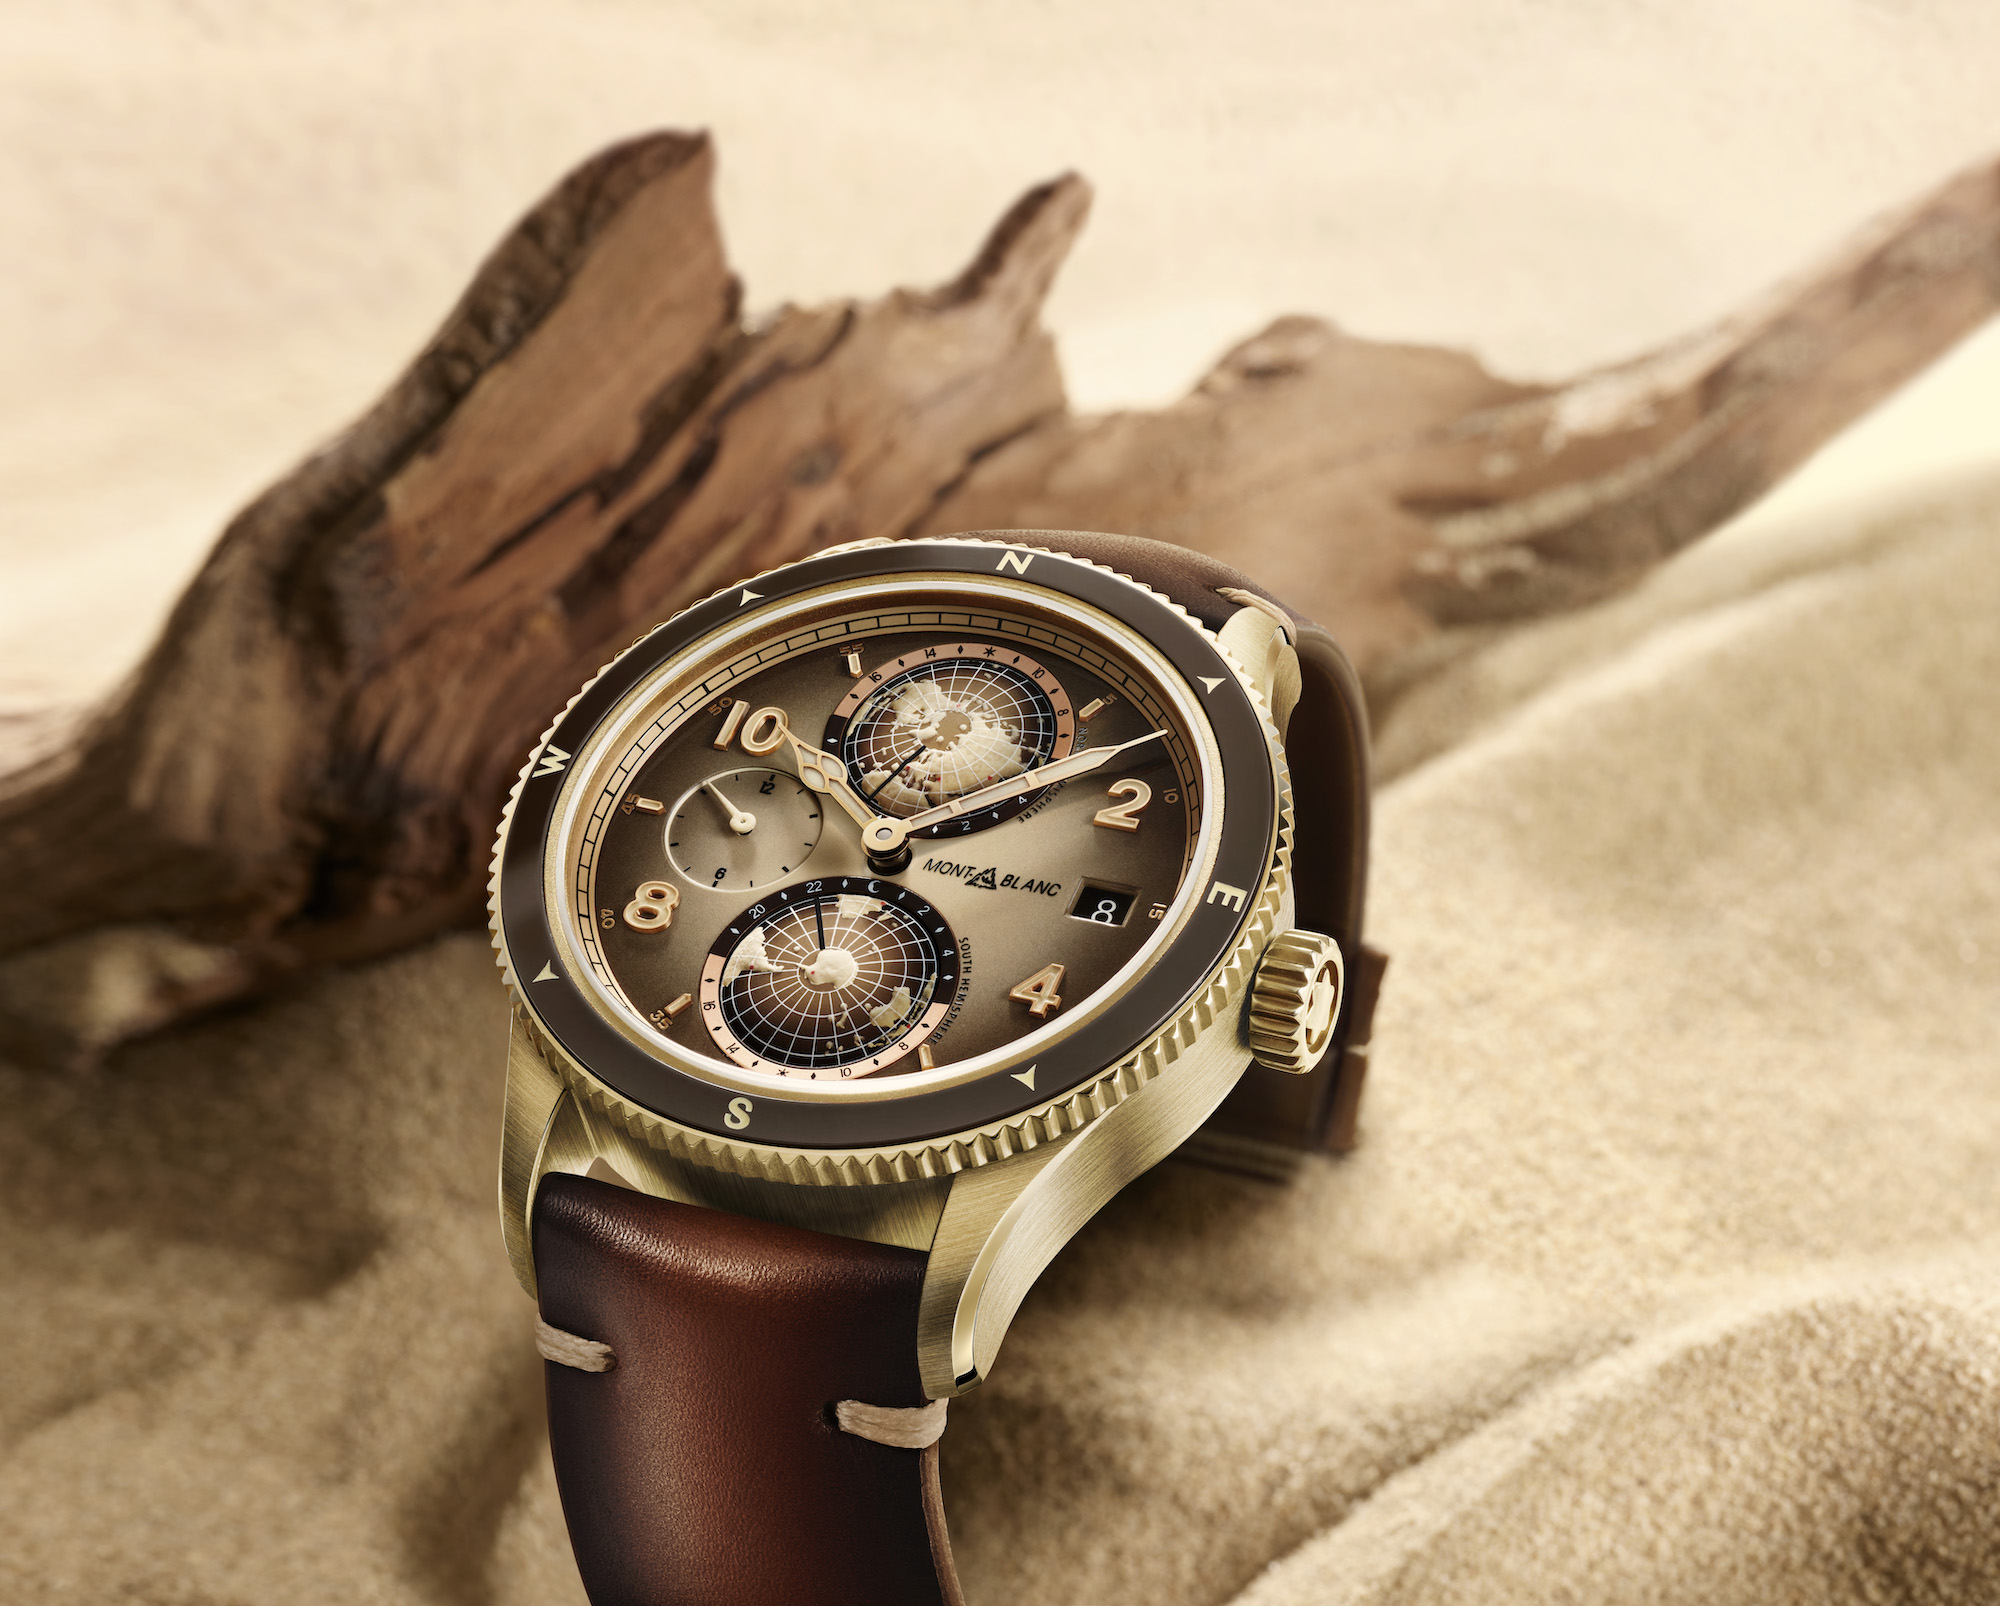 Montblanc 1858 Geosphere Limited Edition 1858 Lifestyle